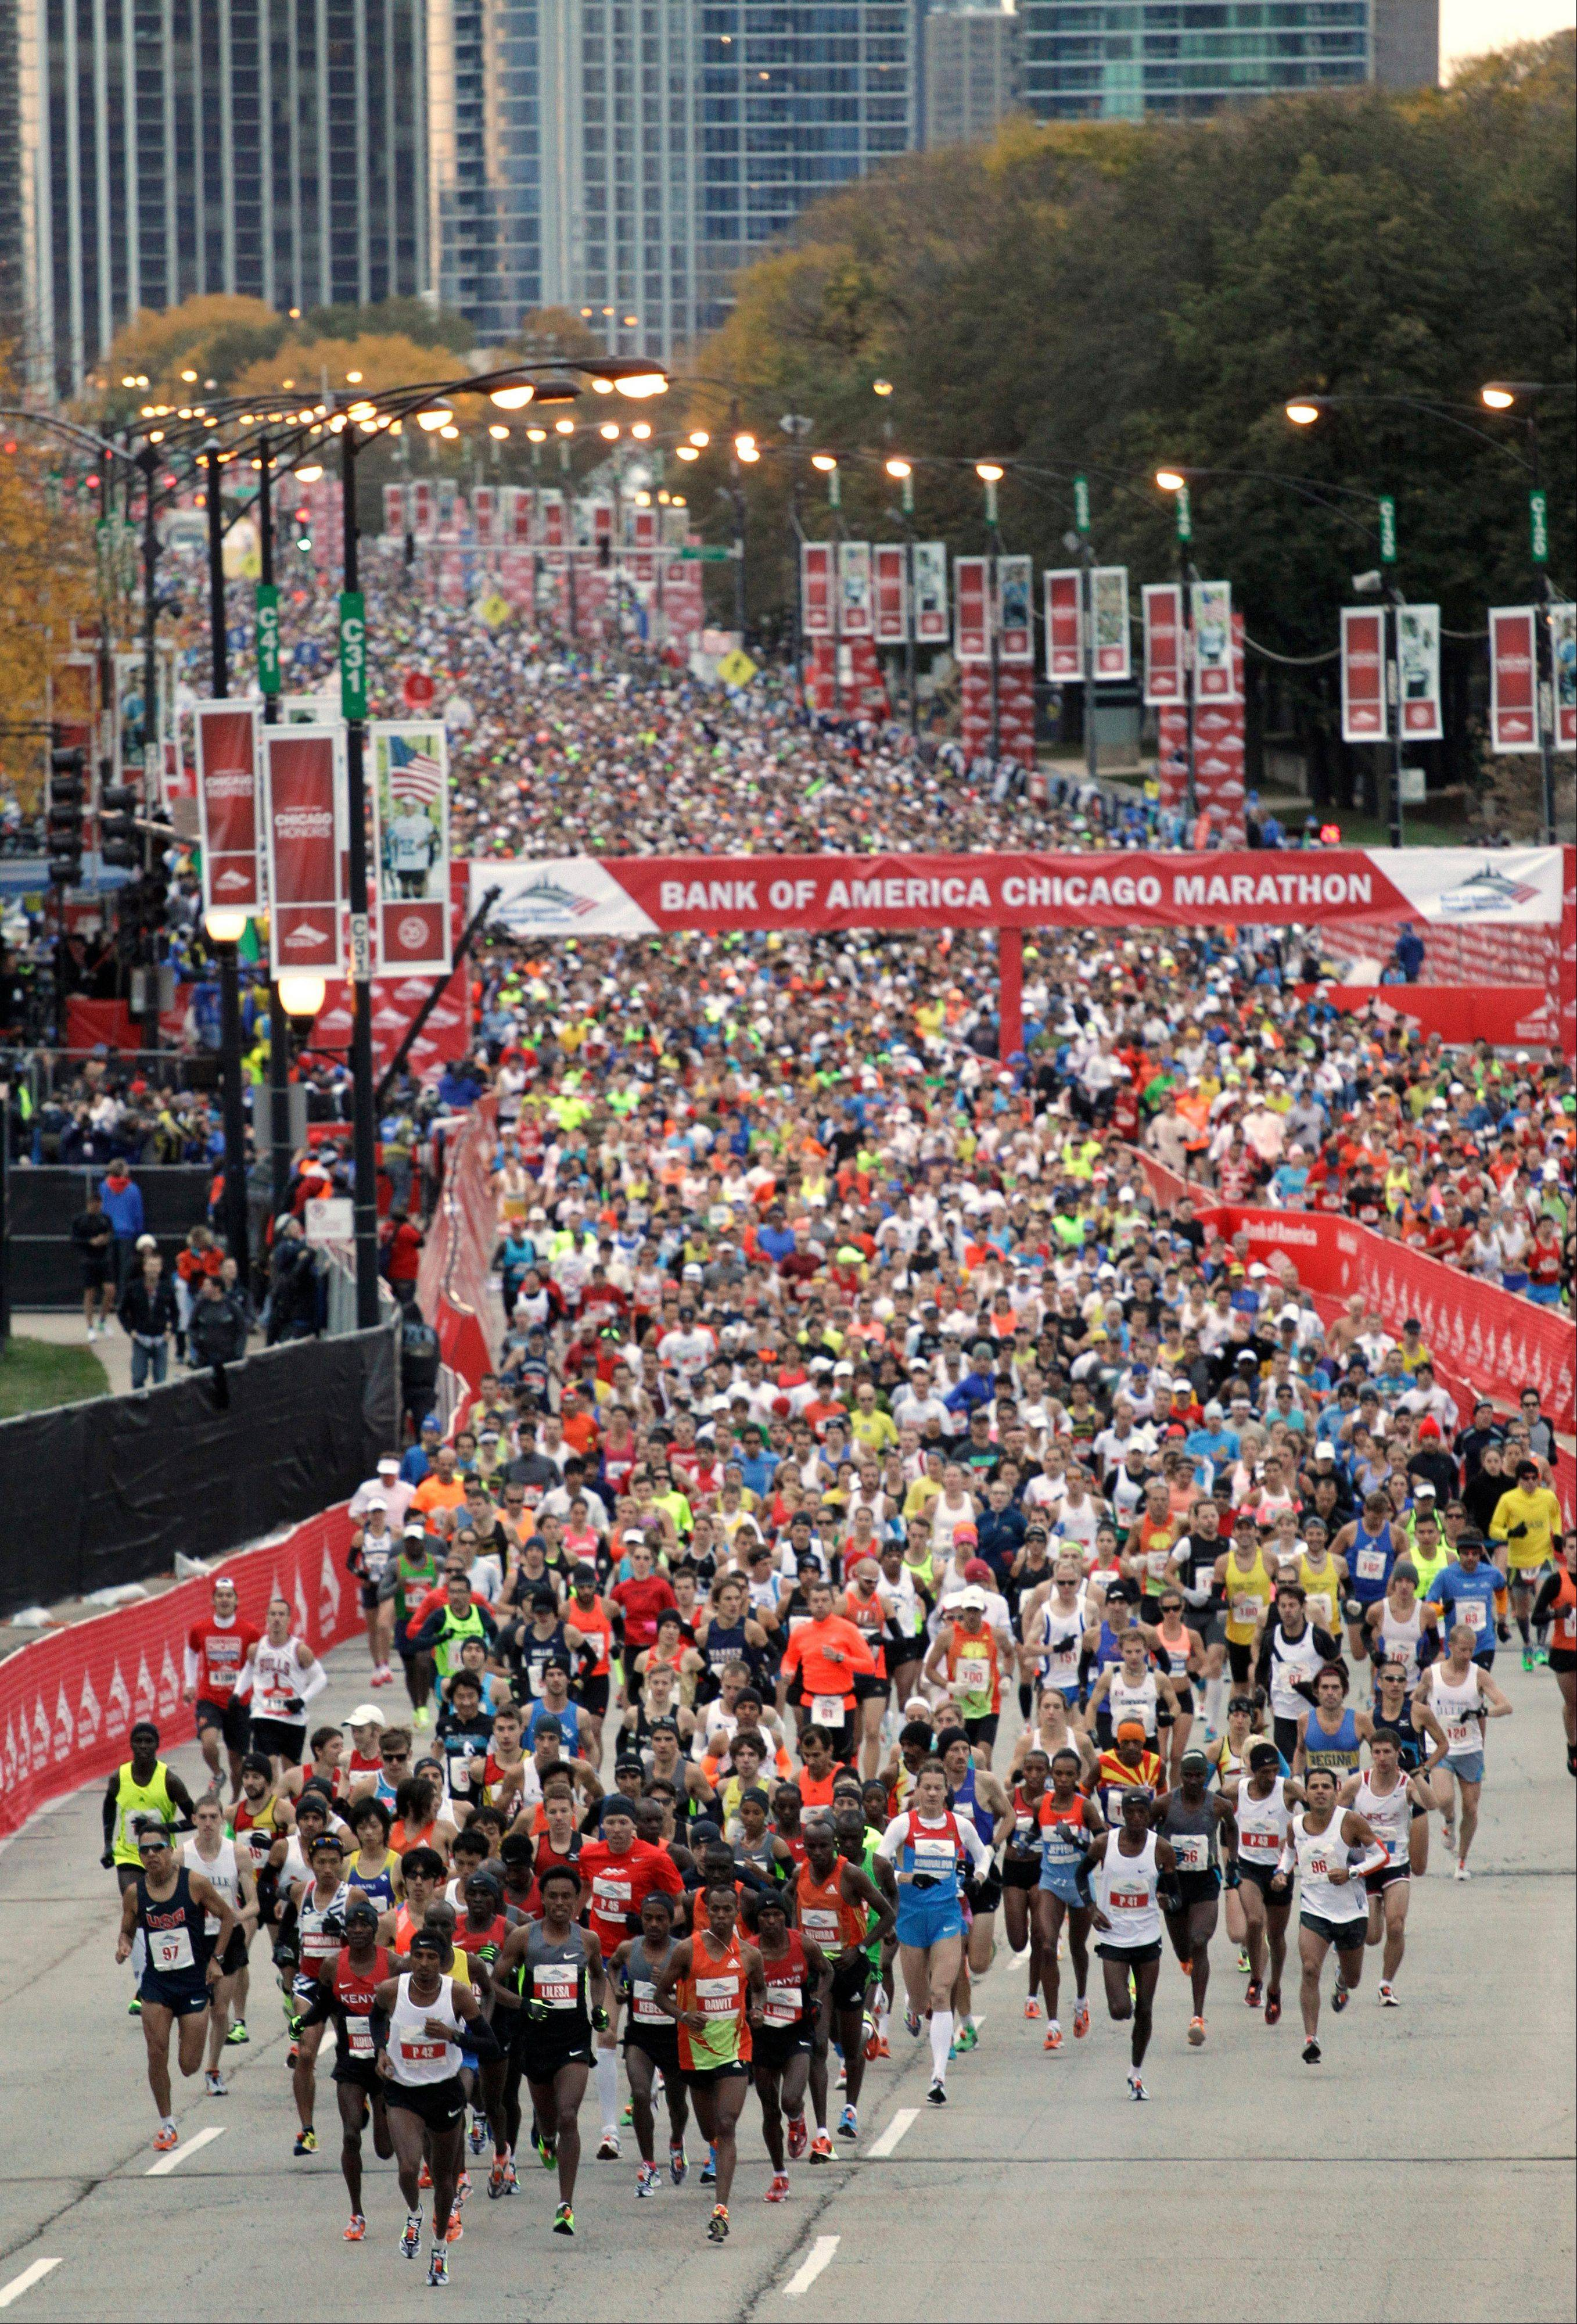 Runners leave the starting line during the 2012 Chicago Marathon. About 45,000 athletes will participate in this year�s race, which will begin at Grant Park on Sunday morning.